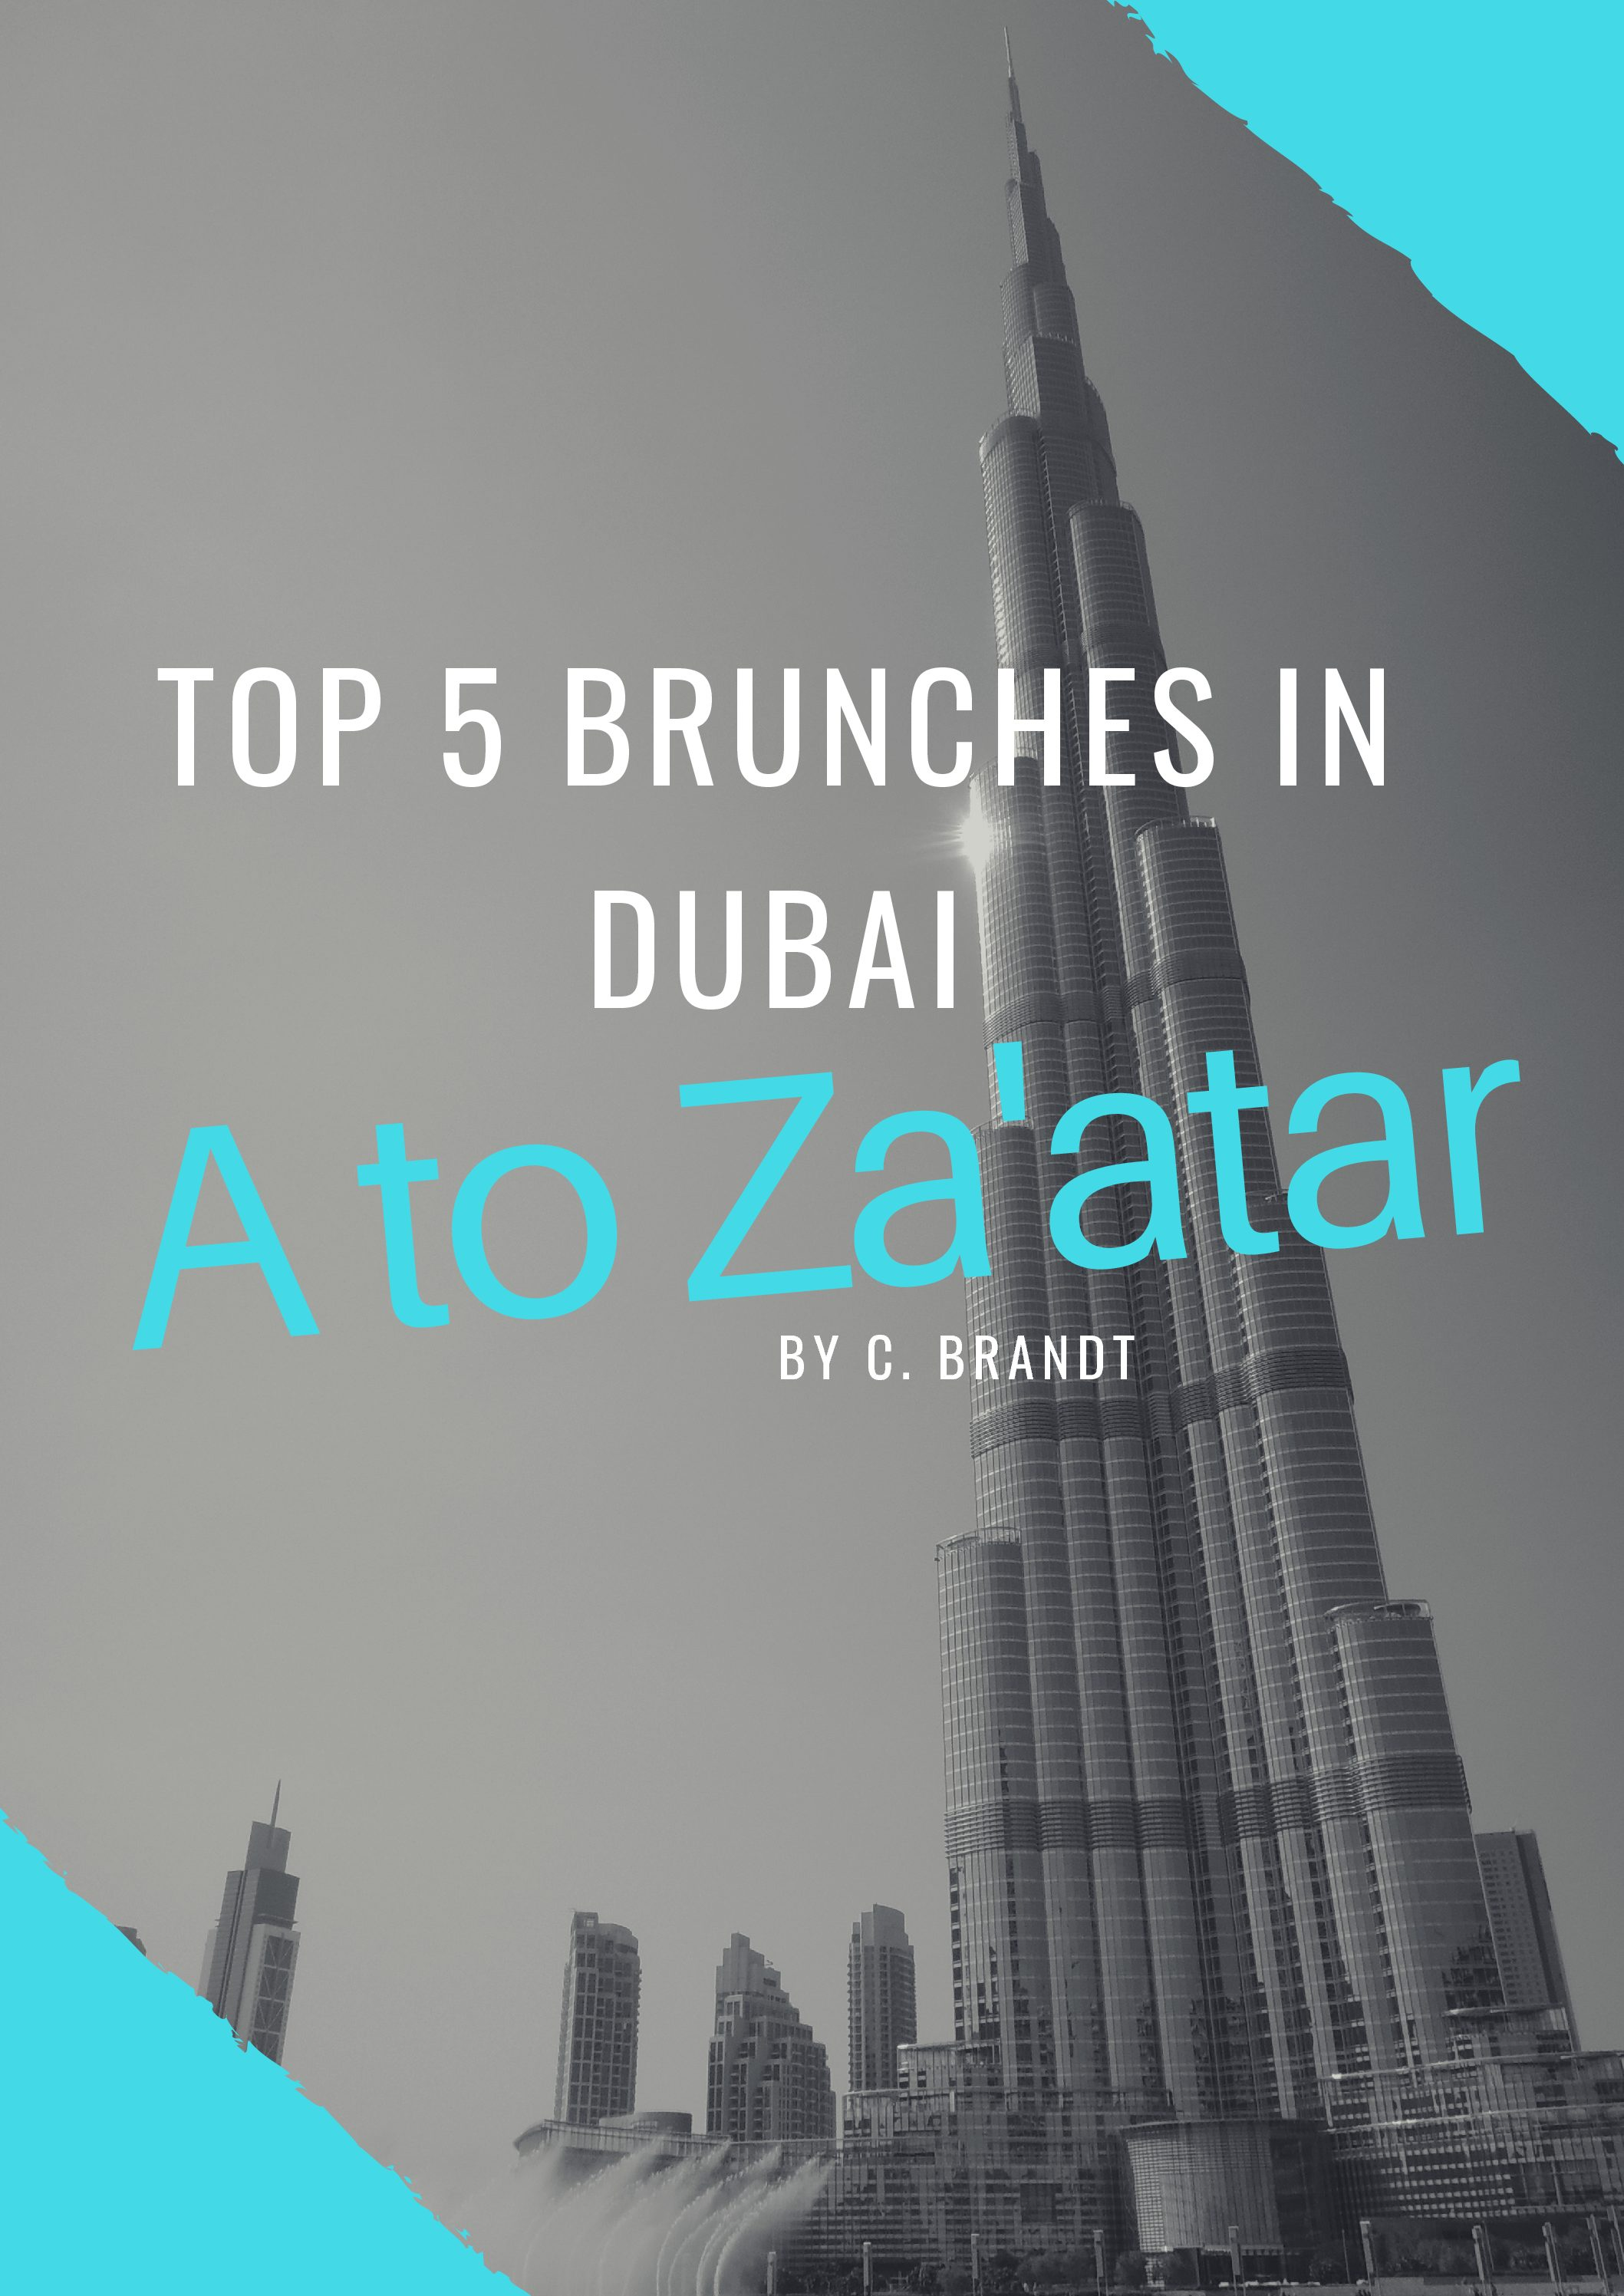 Top 5 Brunches in Dubai.